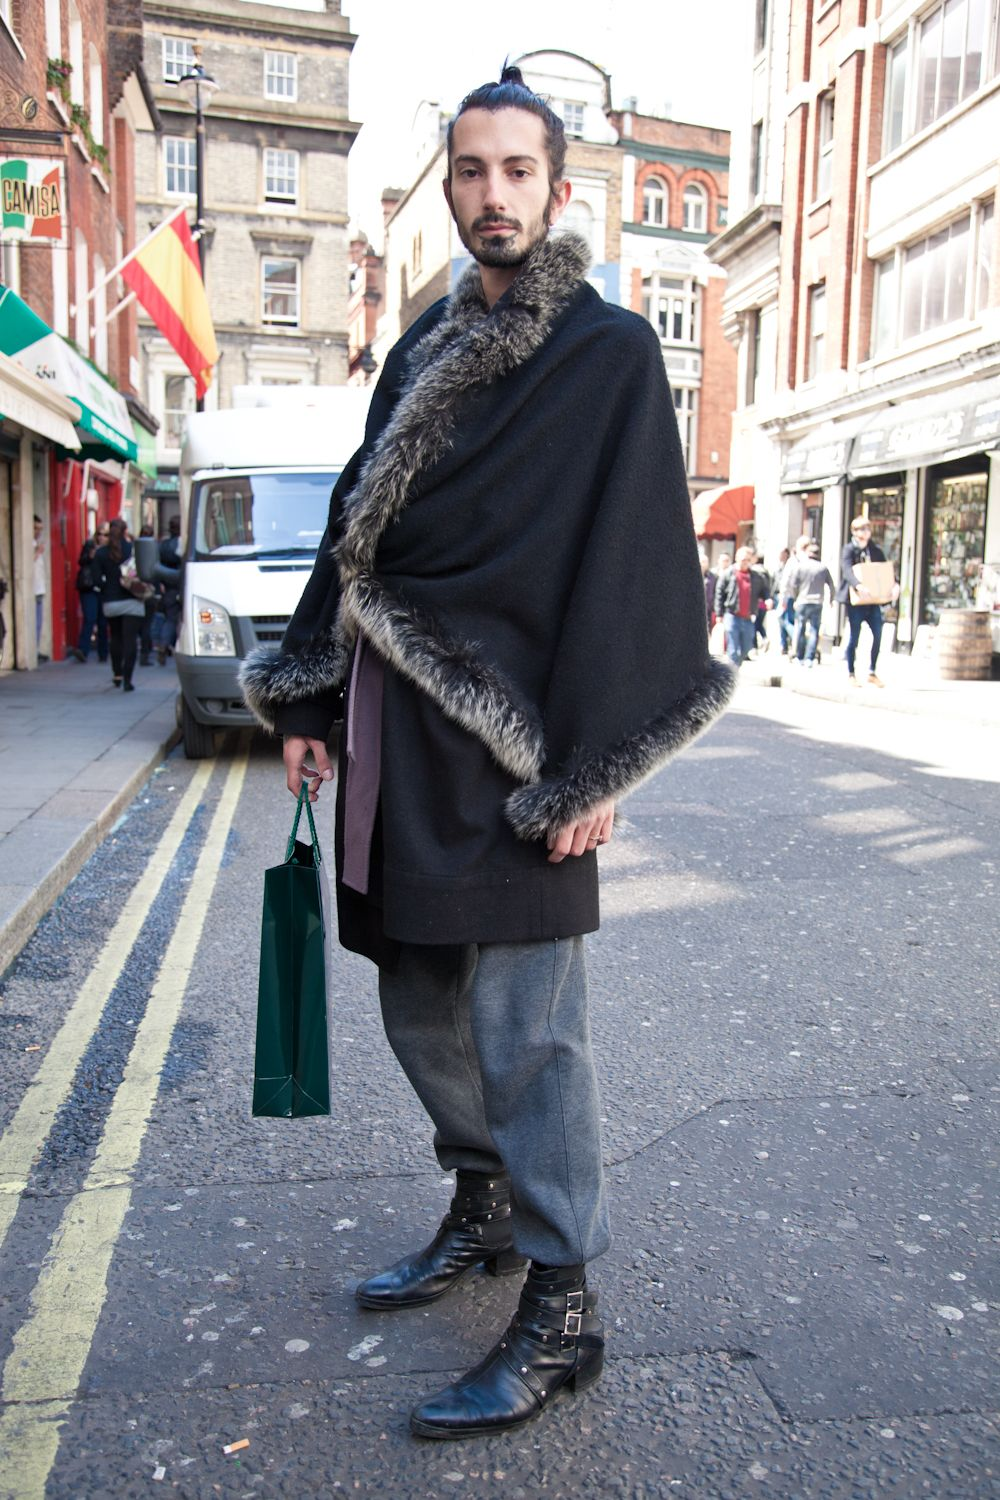 London Street Style Oxford Soho Always Swooning Over A Man With His Hair Pulled Back